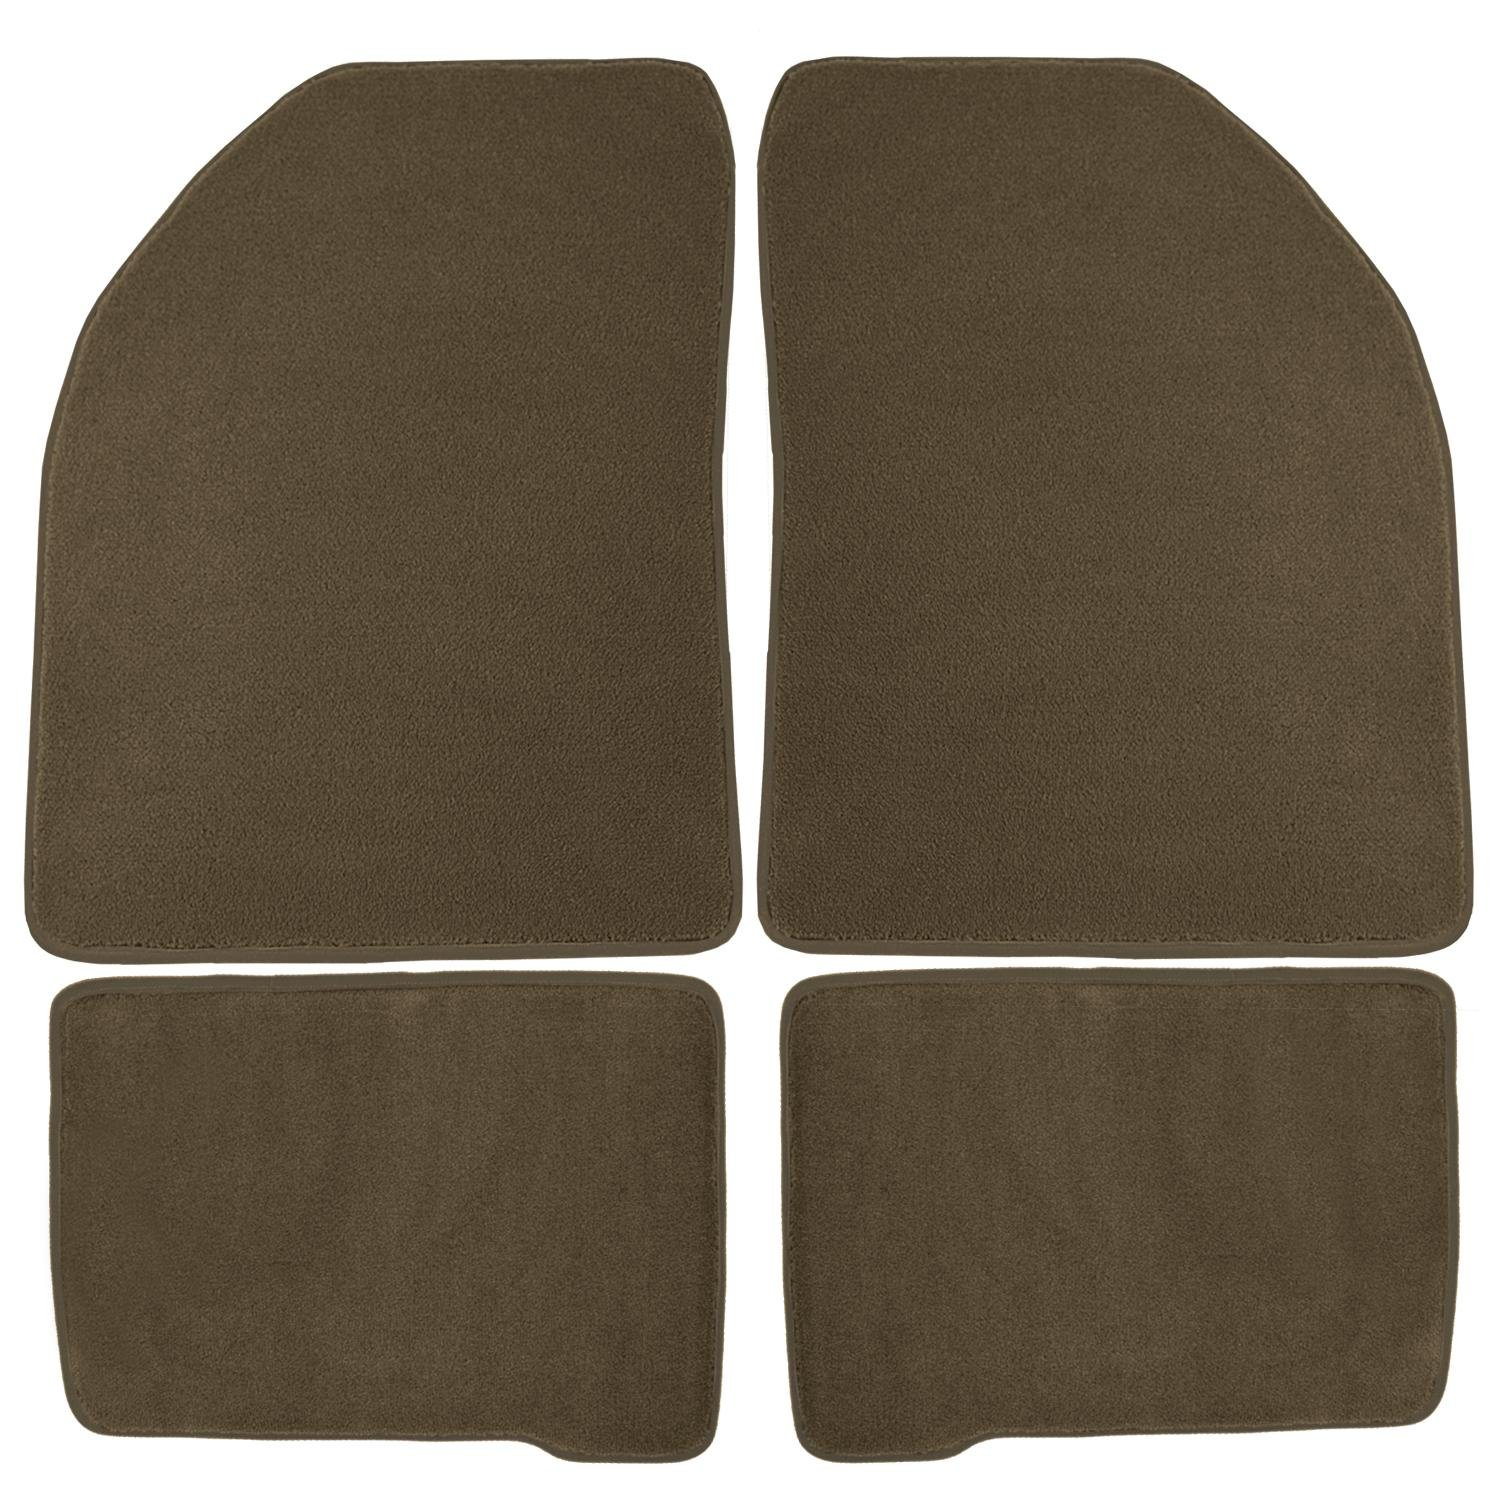 Black CFMBX1MR9298 Coverking Custom Fit Front and Rear Floor Mats for Select Mercury Sable Models Nylon Carpet